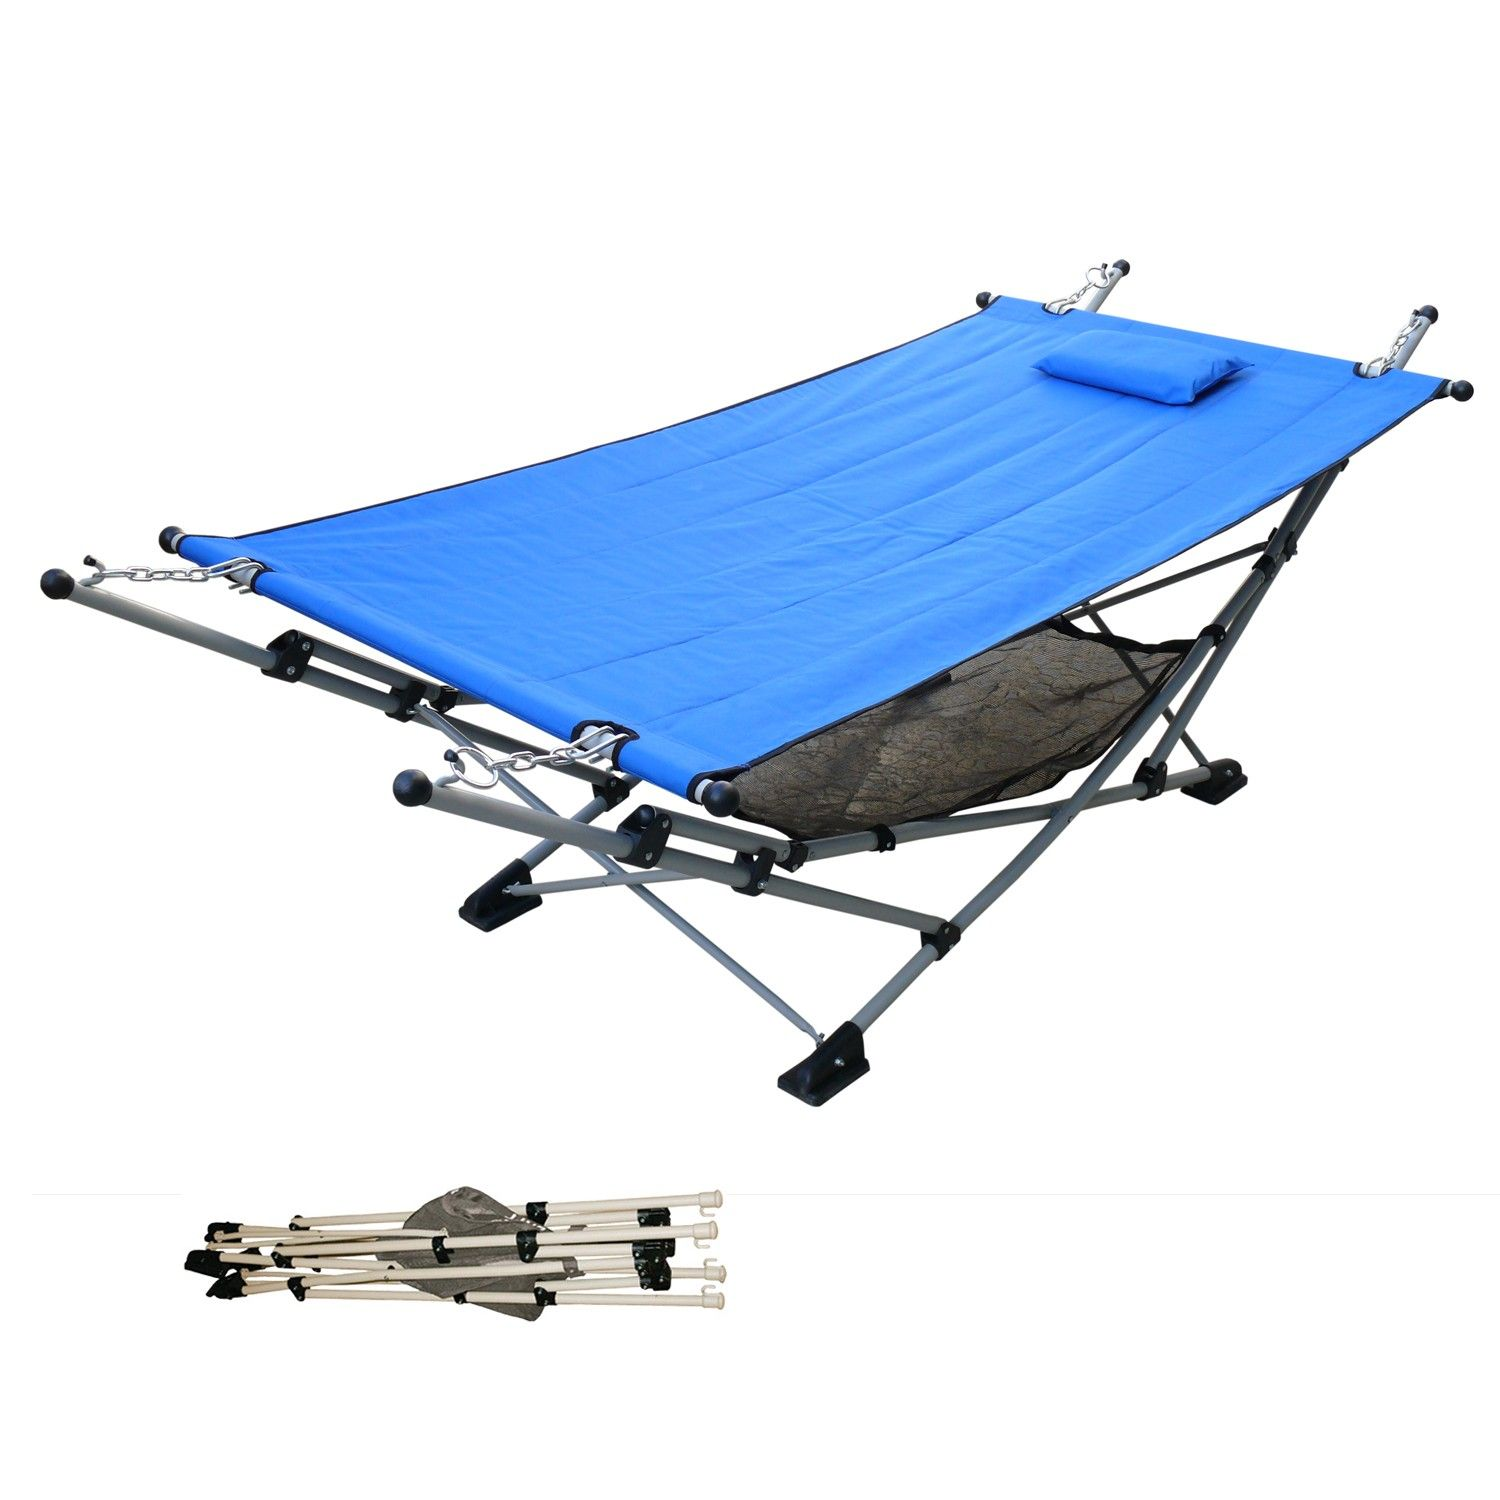 stow away with bliss hammock ez stow portable hammock with stand  collapsible so you need stow away with bliss hammock ez stow portable hammock with stand      rh   pinterest